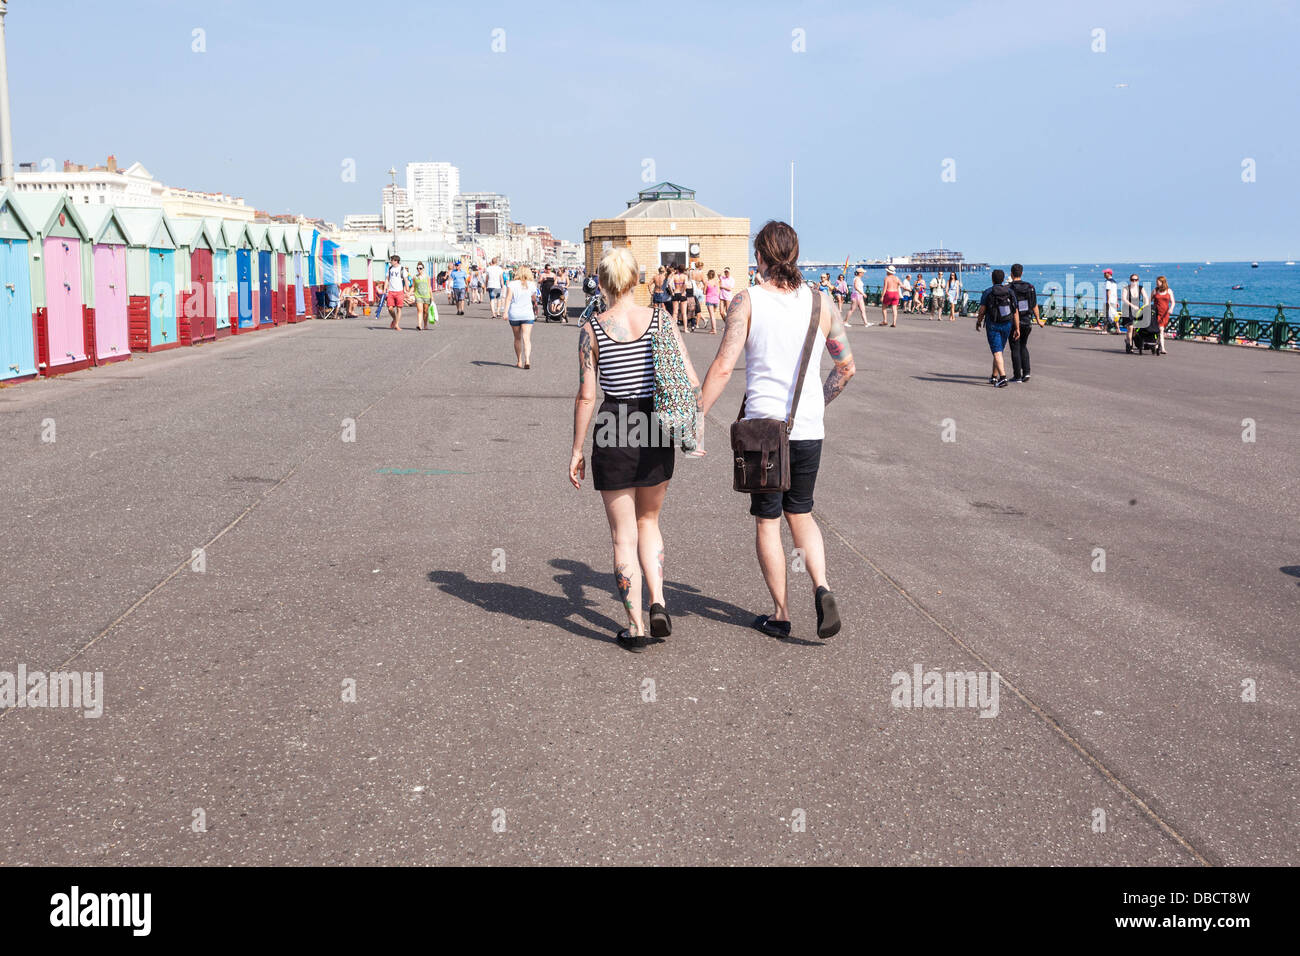 Pedestrians strolling along the seafront, Brighton, England, UK - Stock Image